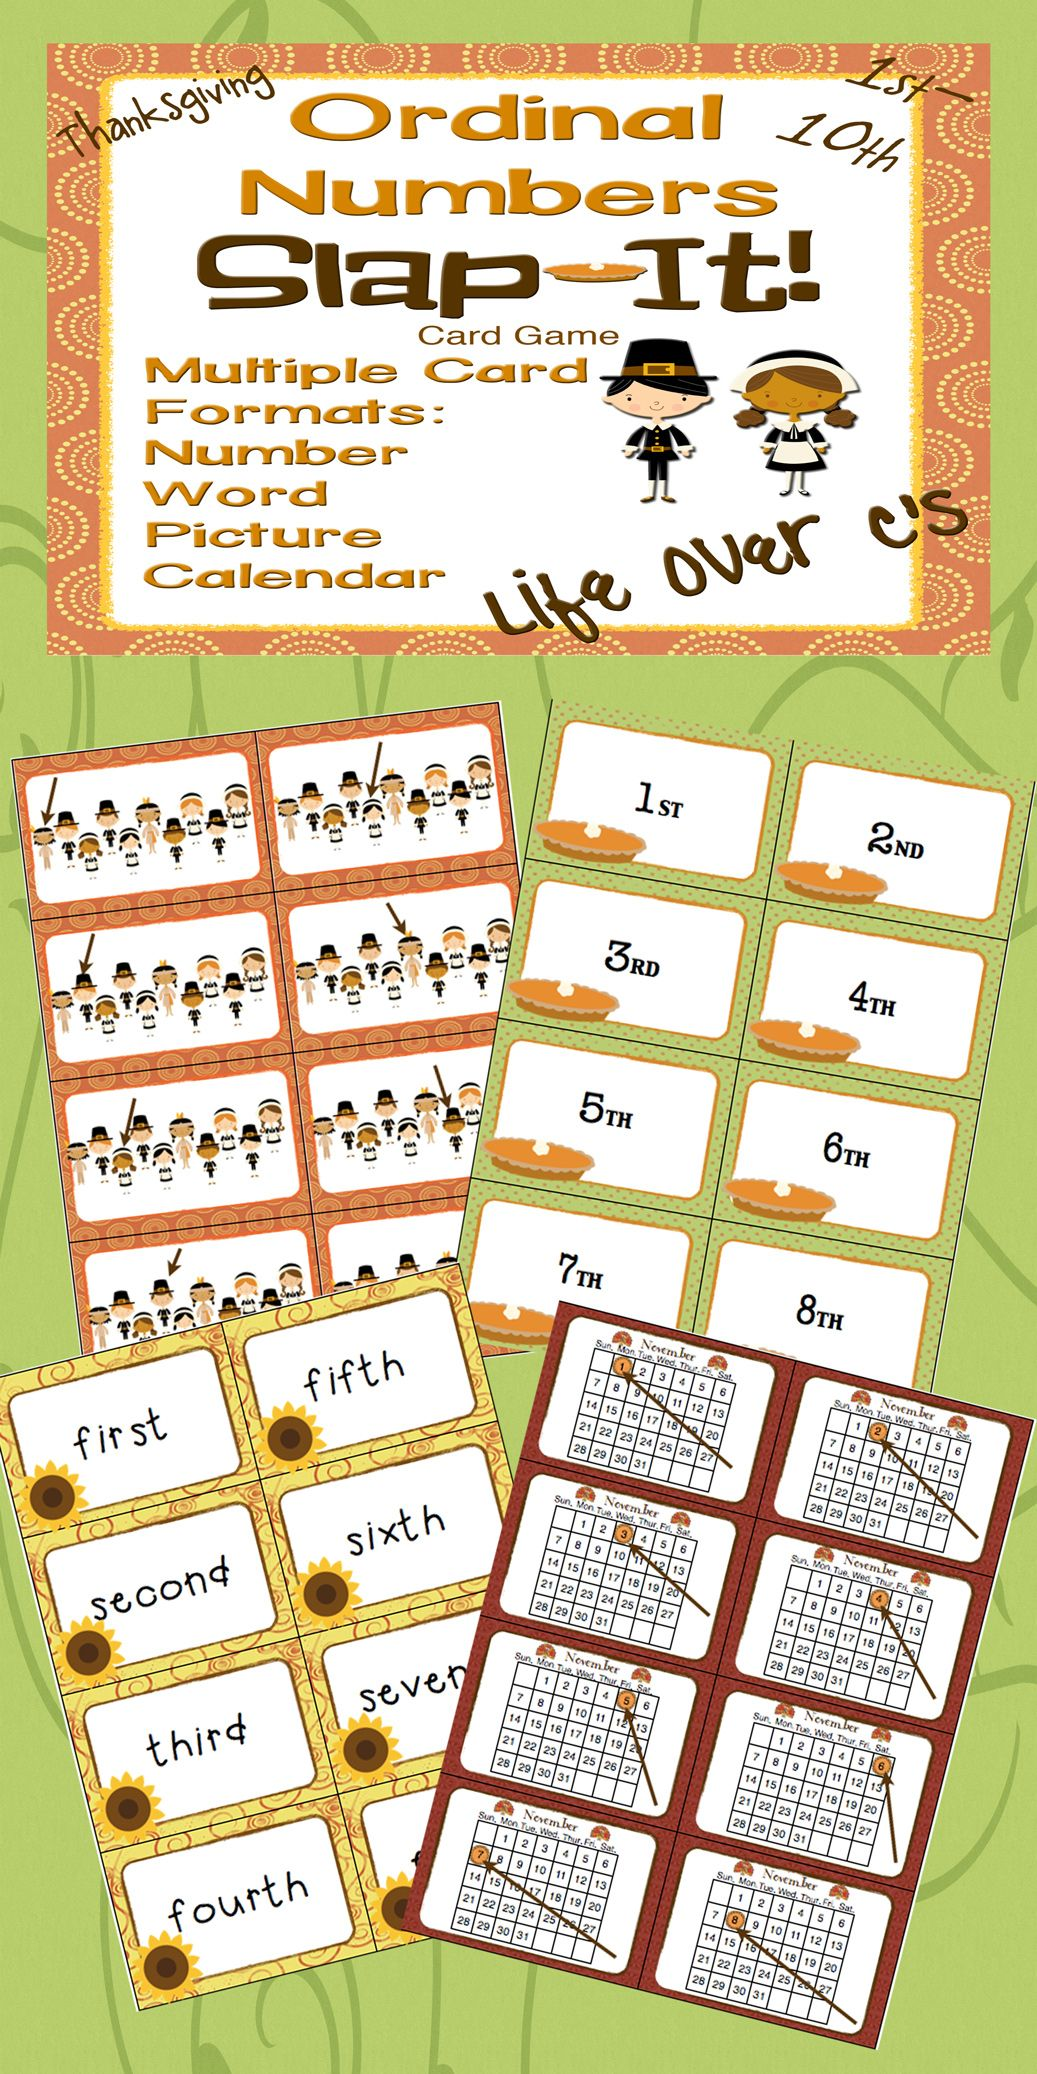 Ordinal Numbers 1st 10th Slap It Card Game Math Center Thanksgiving Theme